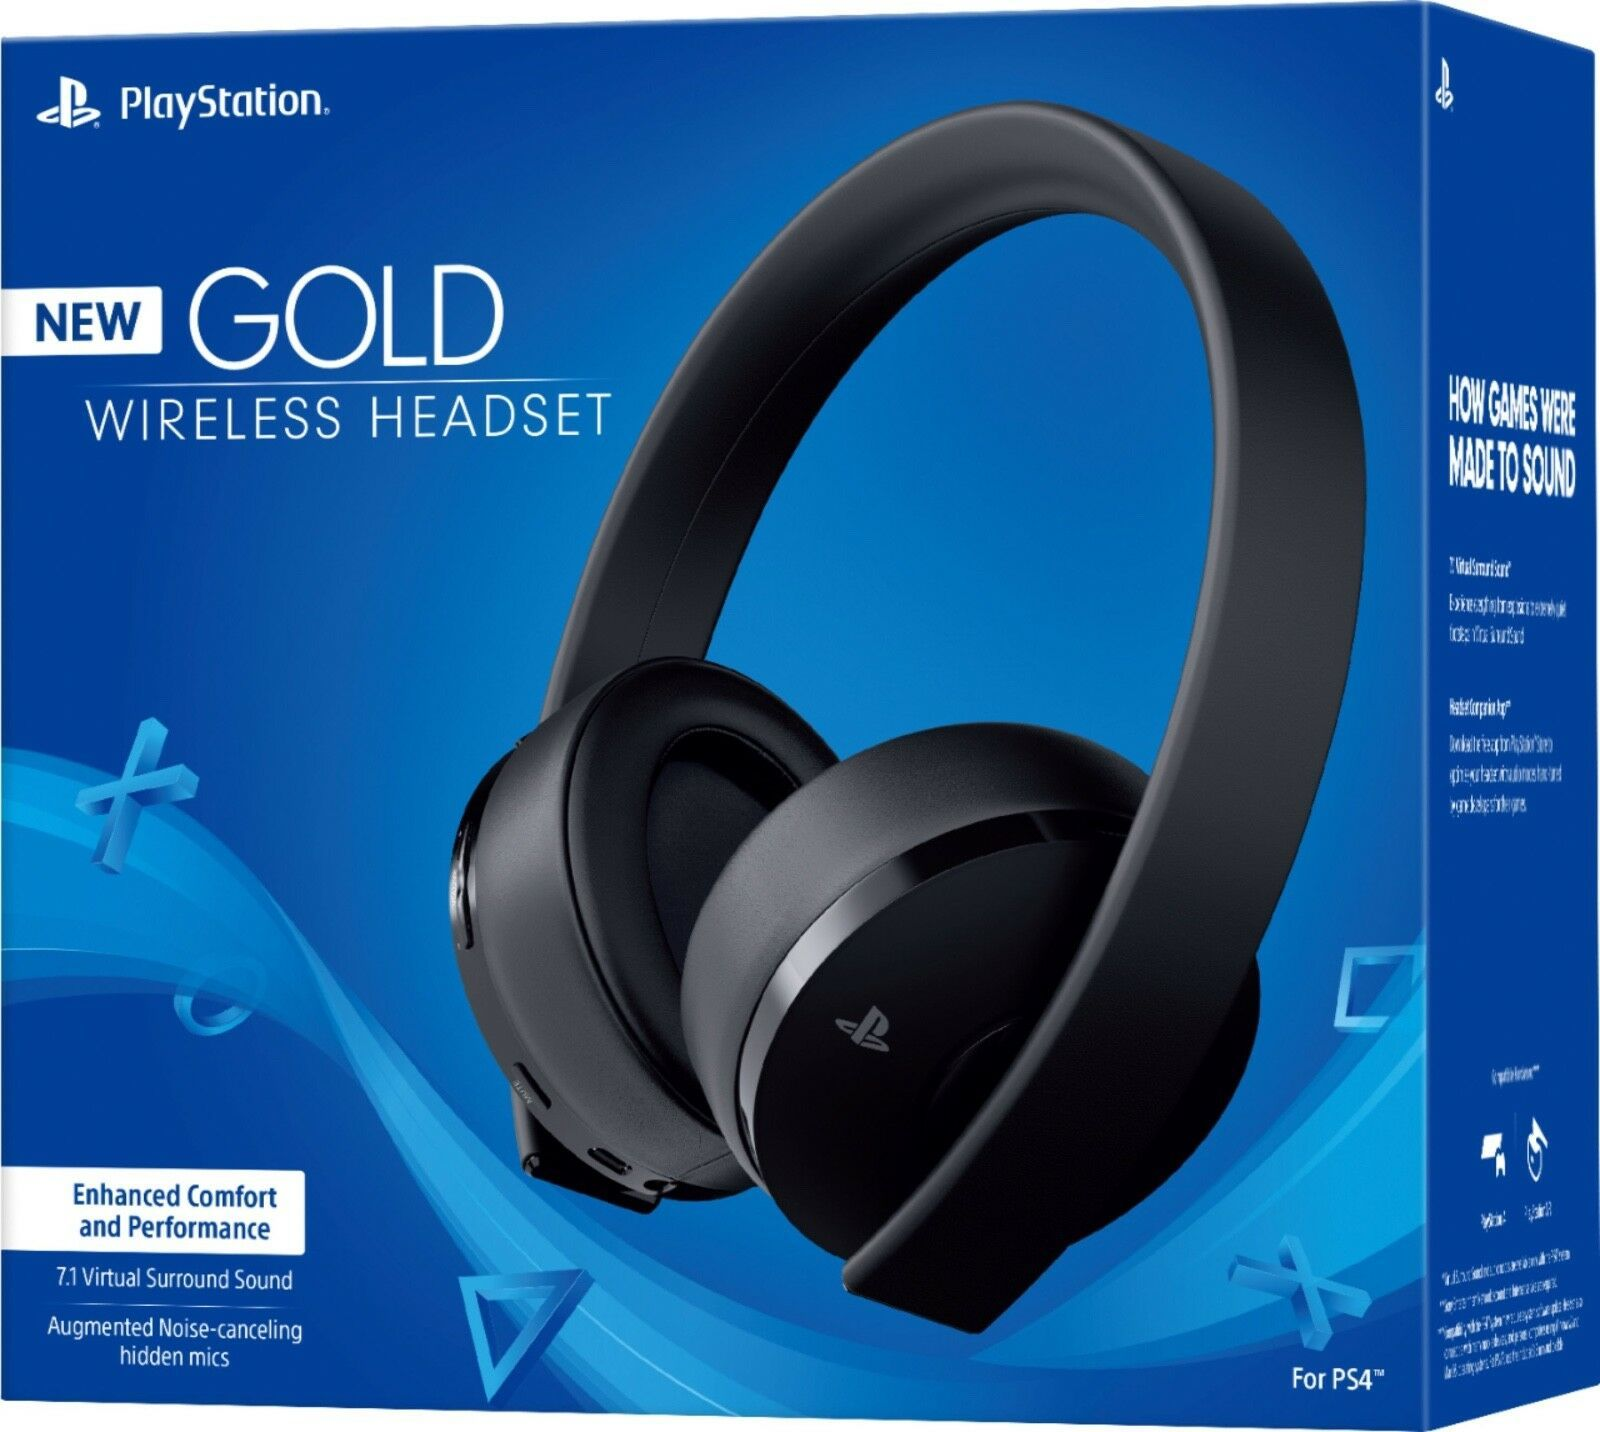 Headsets 171821 Sony Playstation Gold Wireless Headset 7 1 Surround Sound Ps4 New Buy It Now Only 84 9 On Ebay Headsets P In 2019 Playstation Gold Ps4 Headset Gaming Headset